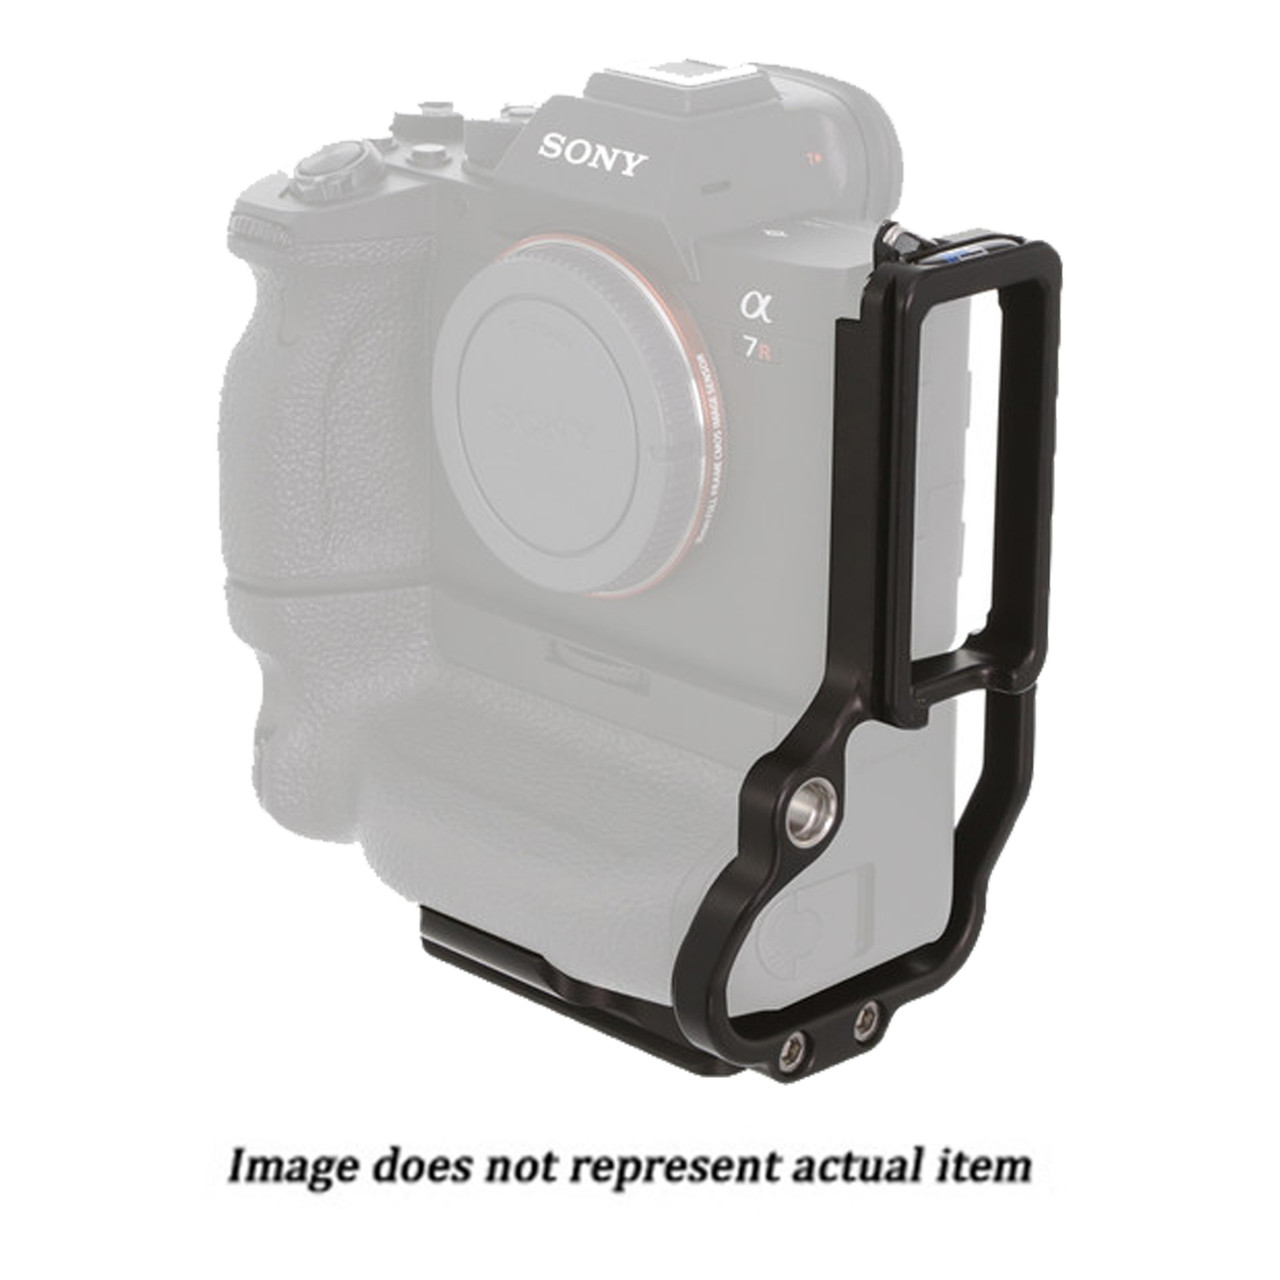 Kirk Enterprises L-Bracket for Sony Alpha a9 II, a7R IV, and a7S III Camera with VG-C4EM Vertical Grip (USED)